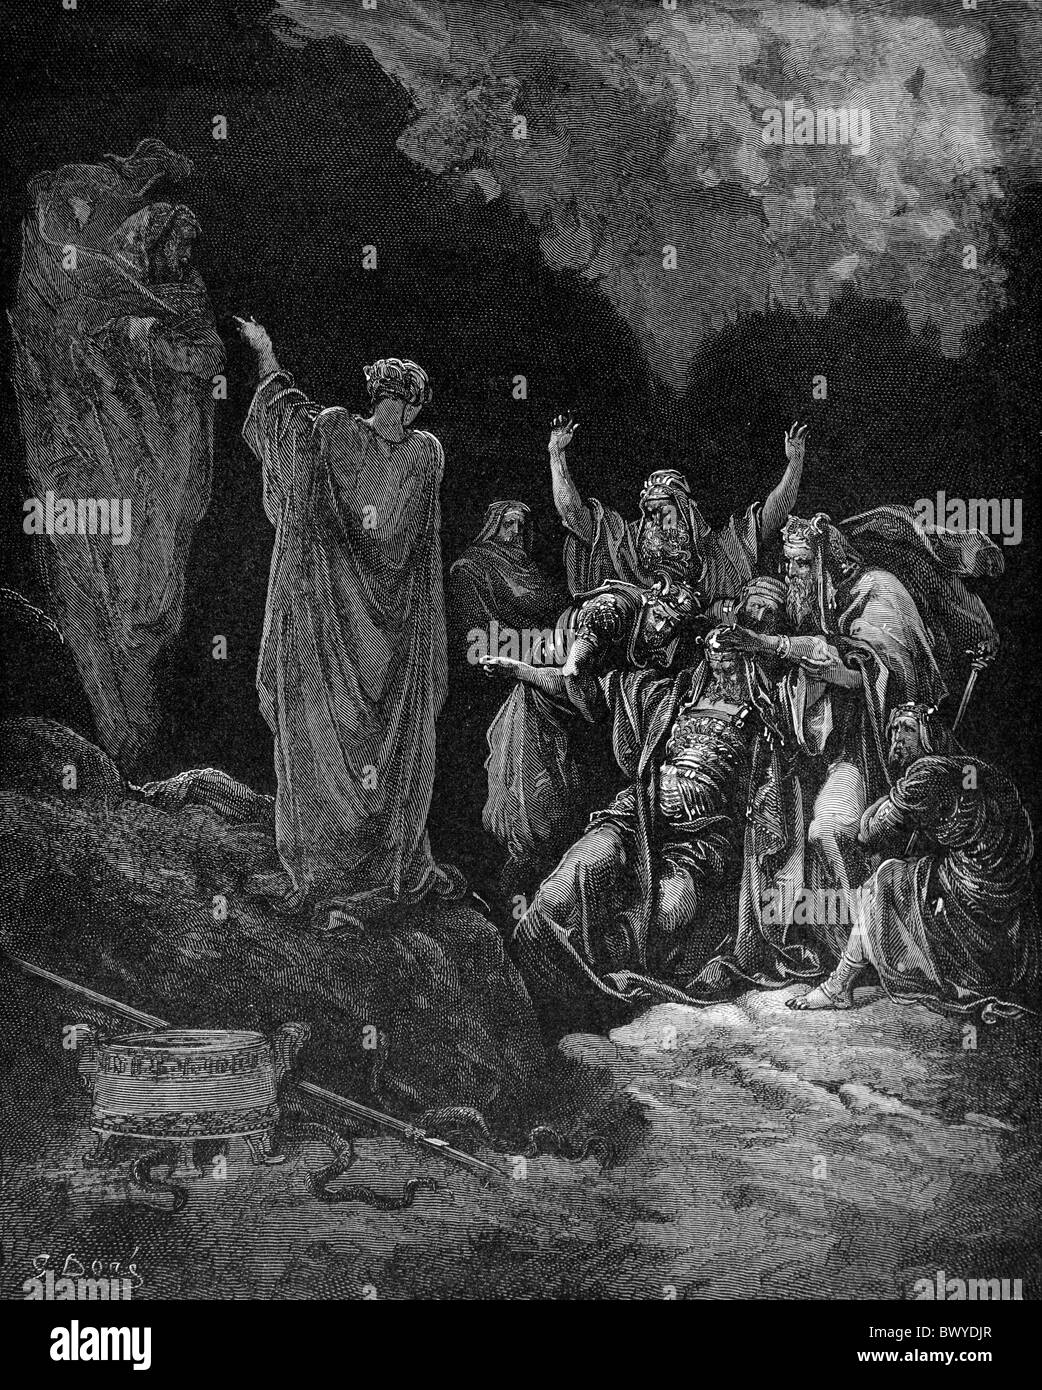 Gustave Doré; Saul consulting the Witch of Endor (1 Samuel Ch 28); Black and White Engraving - Stock Image